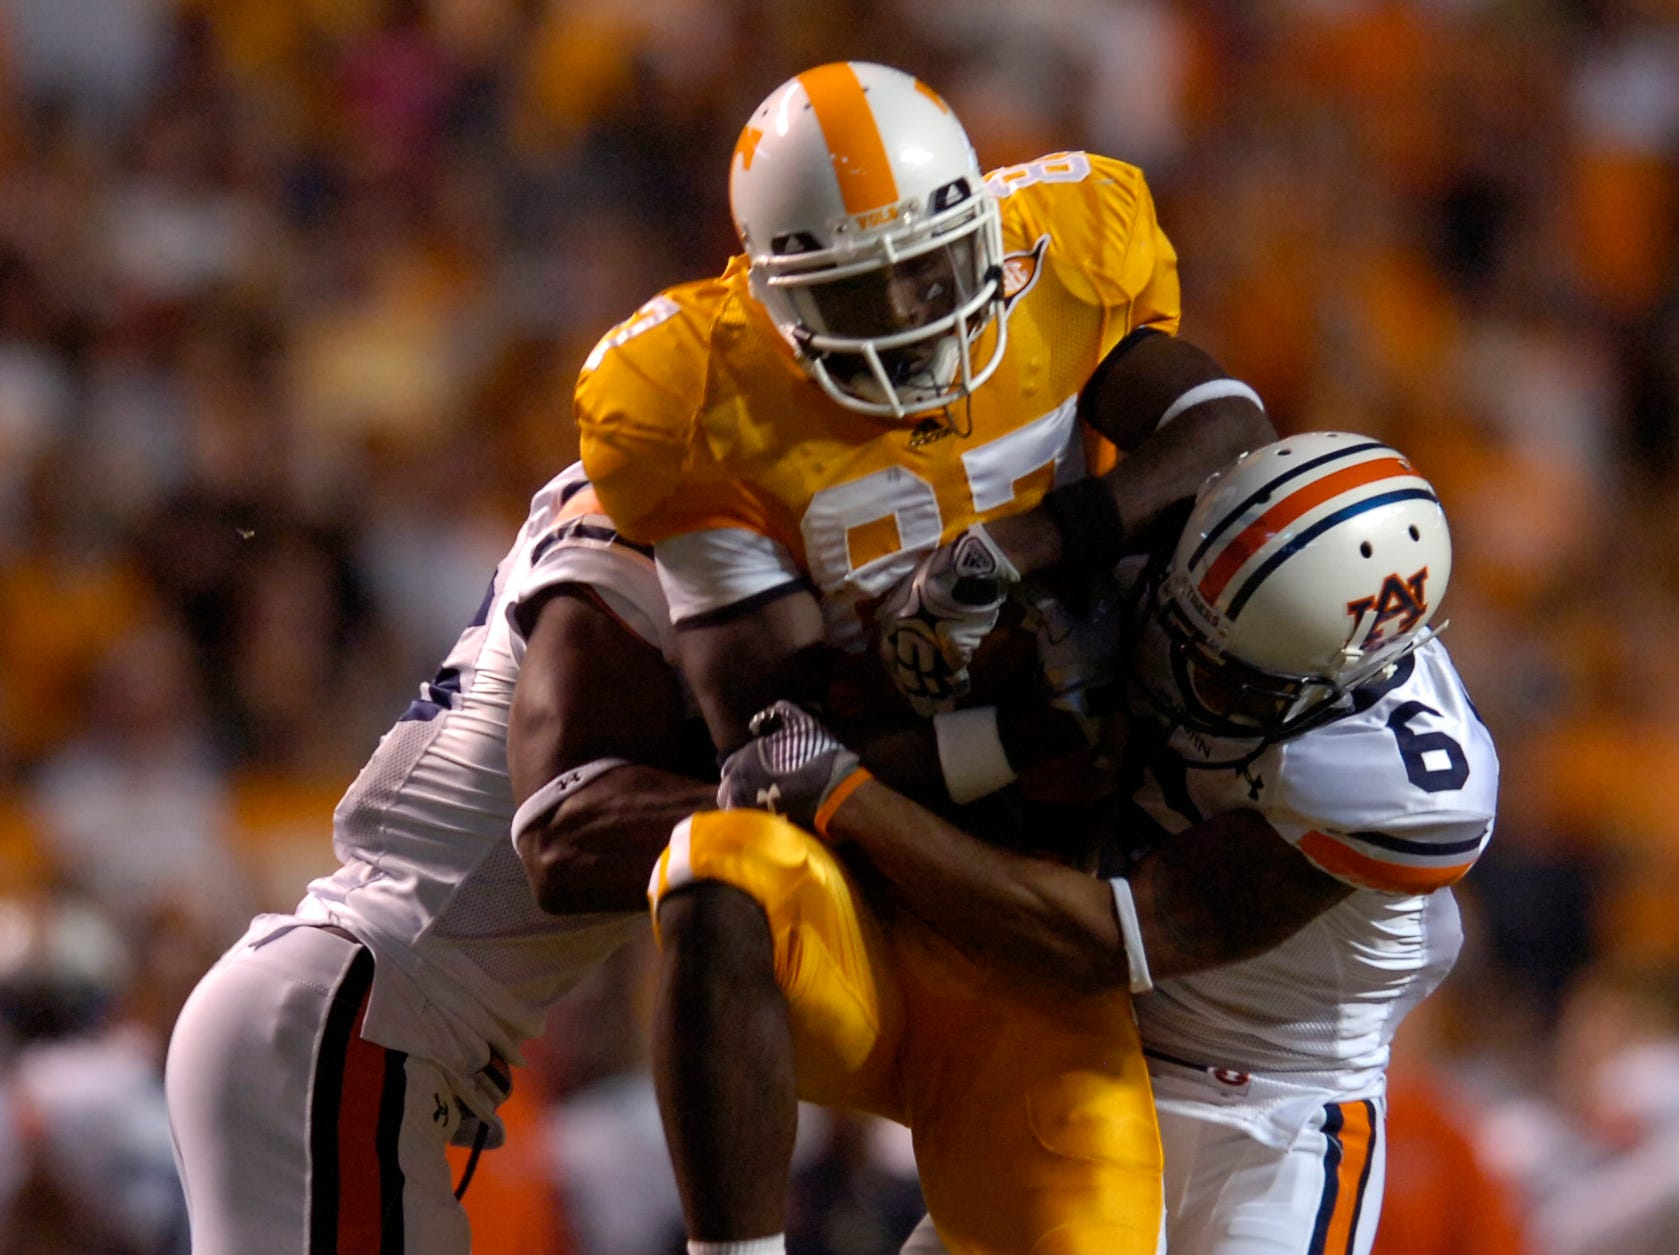 Tennessee wide receiver Quintin Hancock (87) is stopped by Auburn defenders on Saturday, October 3rd, 2009 at Neyland Stadium. Tennessee lost the game 26-22.